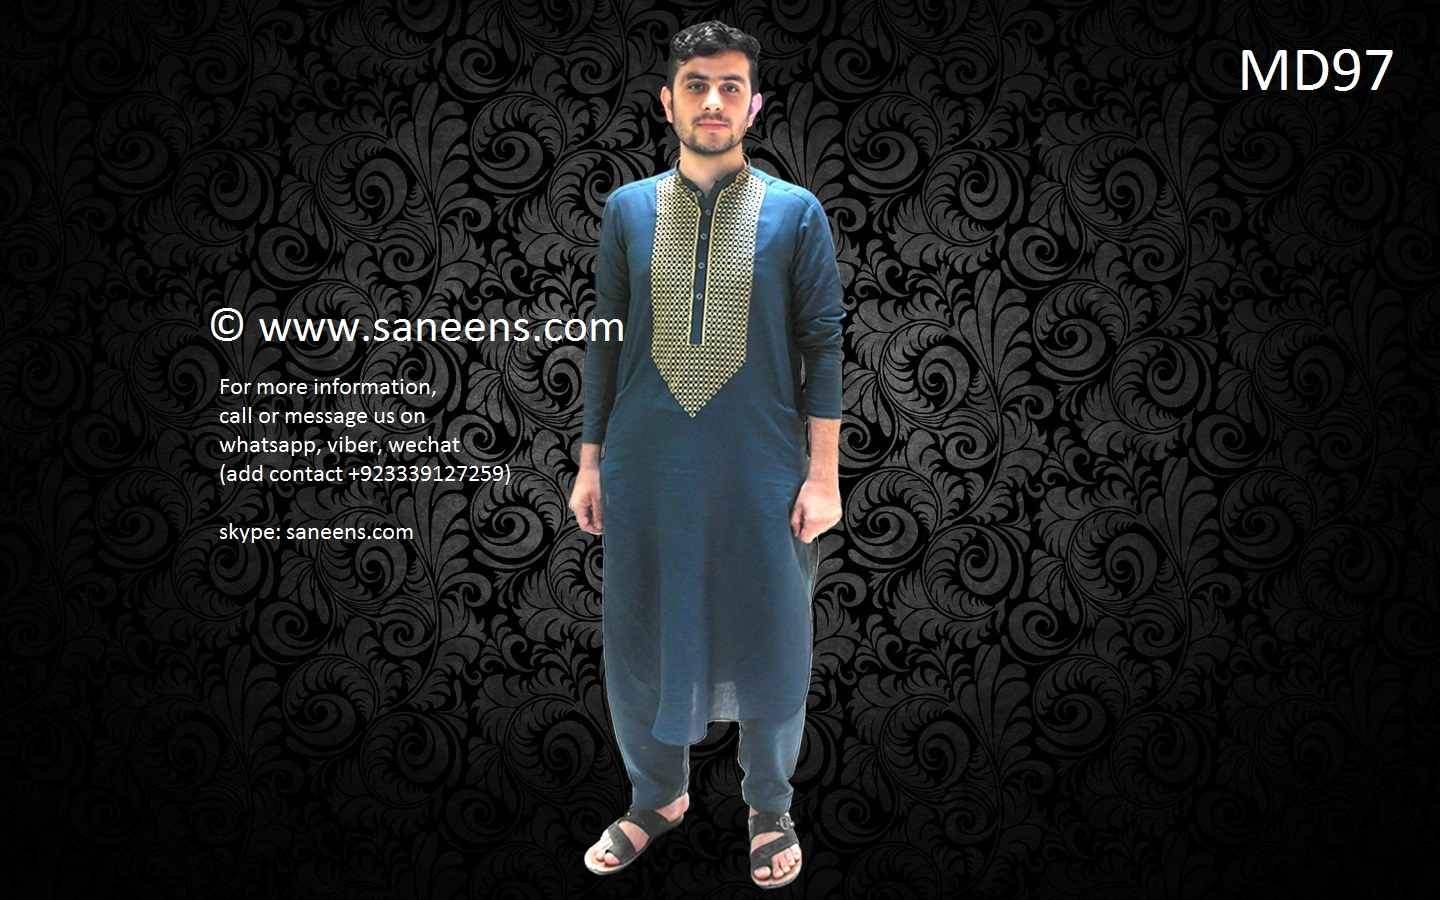 md97-gents-suit-1-.jpg